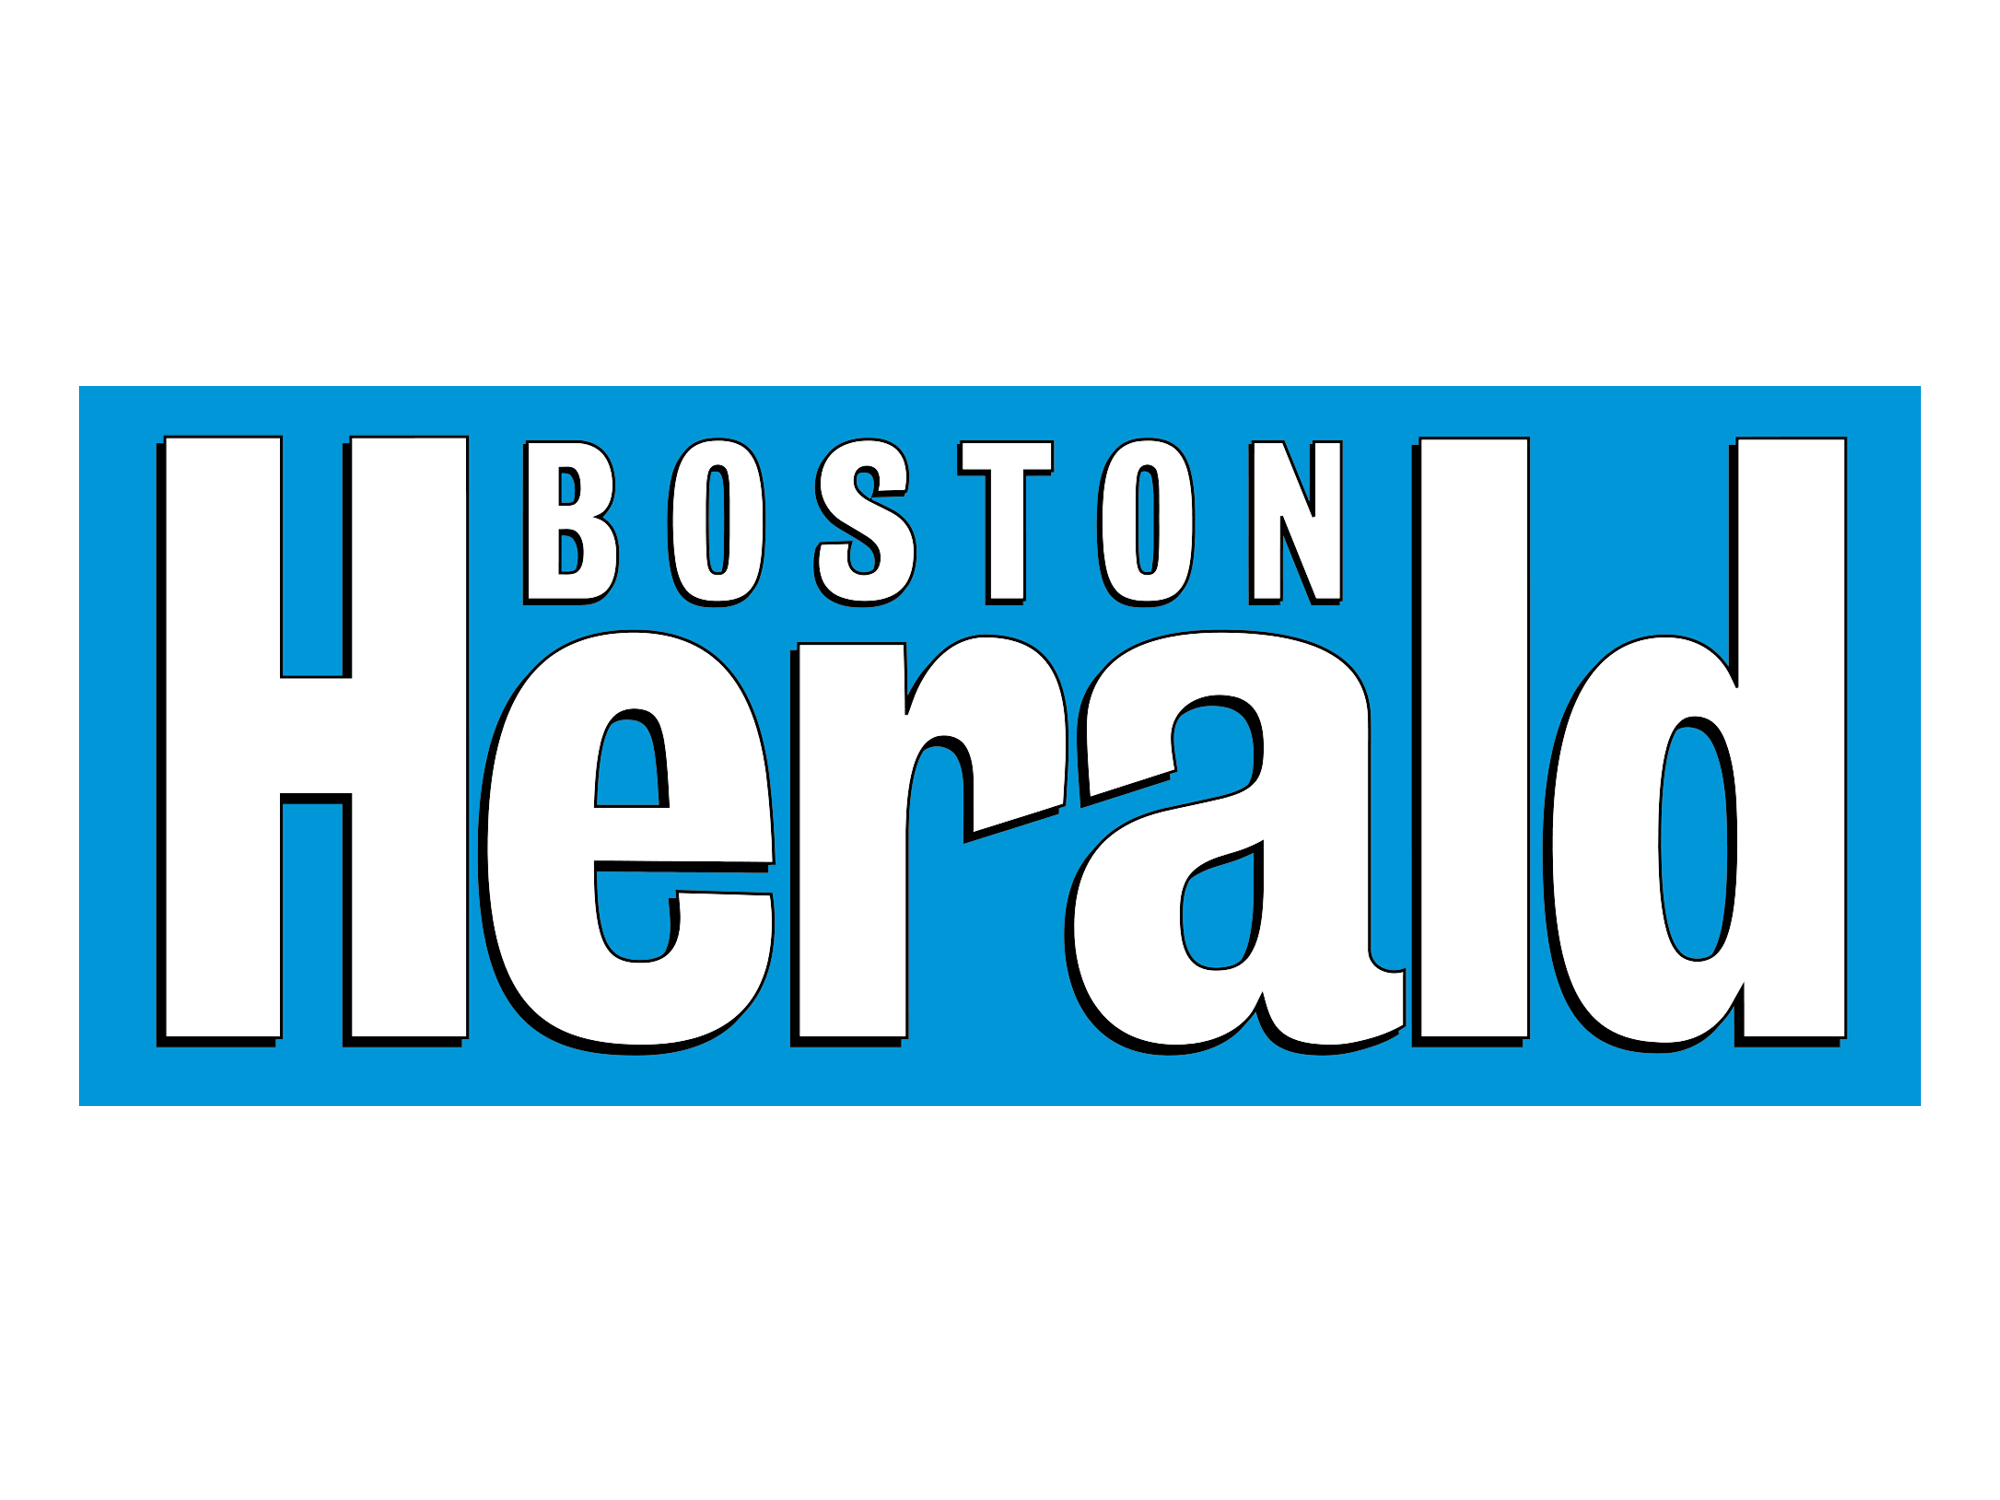 Boston Herald_masthead